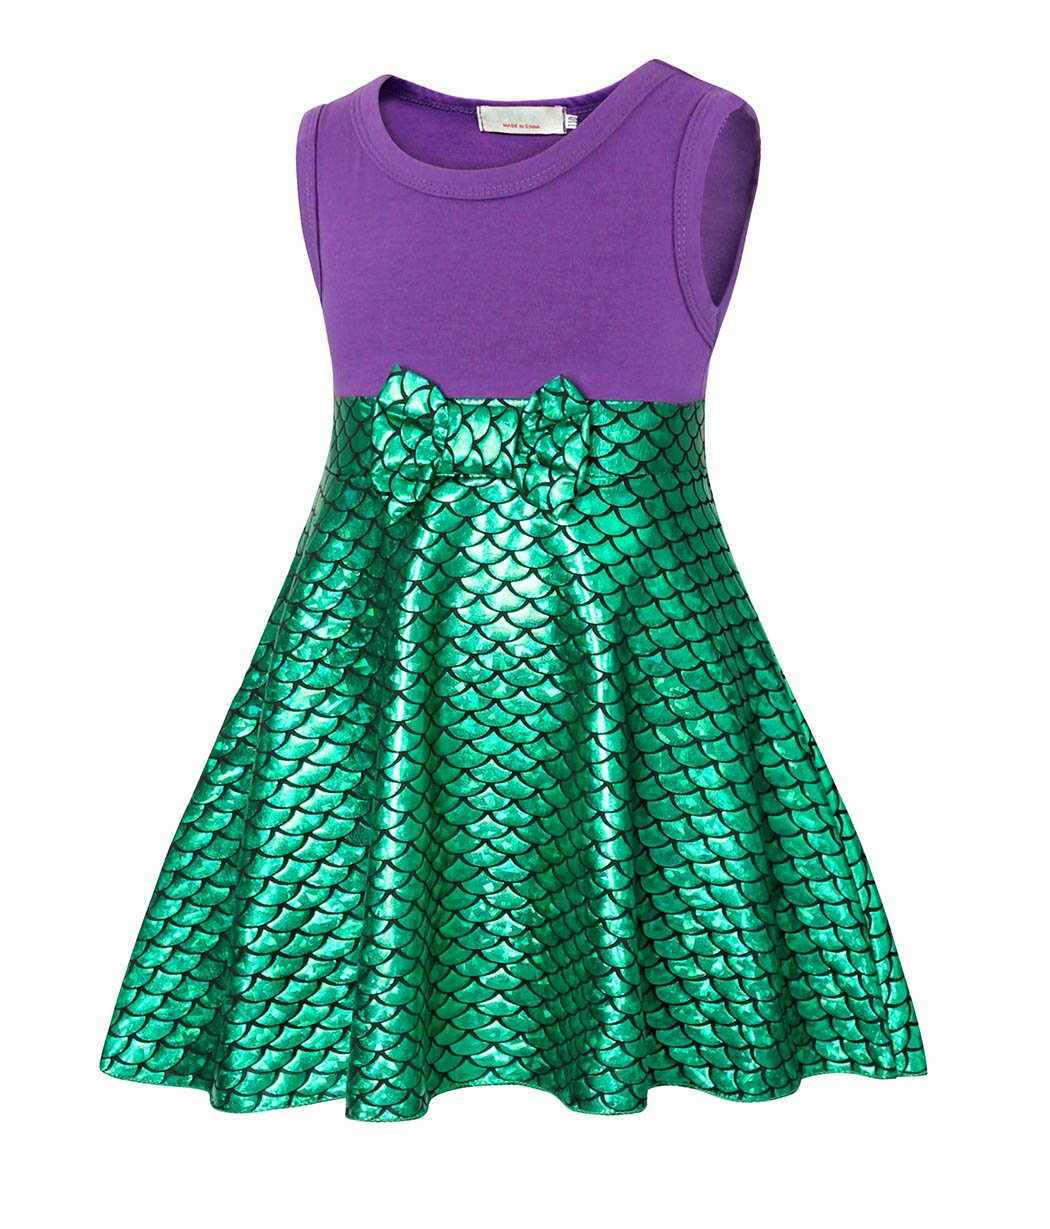 Filare Little Mermaid Dress Costume Girls Outfit Halloween Cosplay Party Kids Clothes 6-7 Years